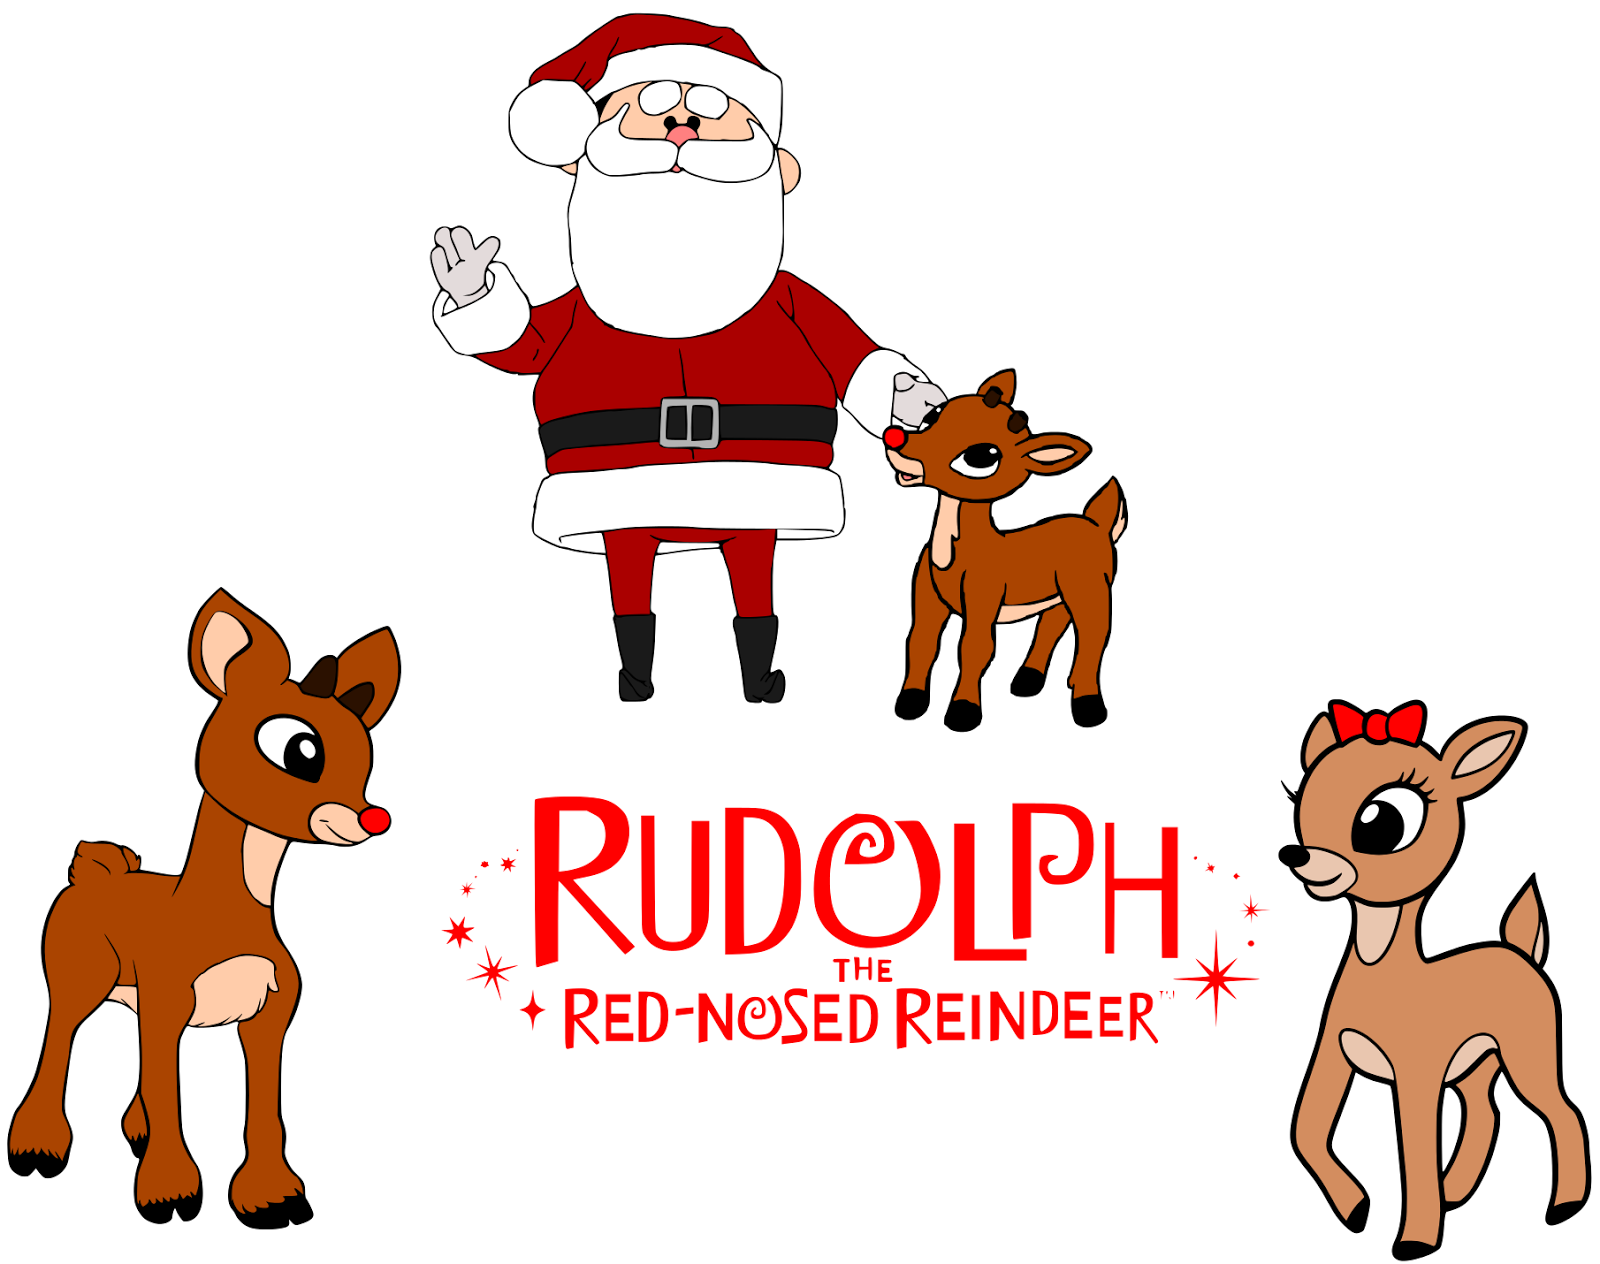 Do you recall, the most famous reindeer of all... CLICK HERE TO ...